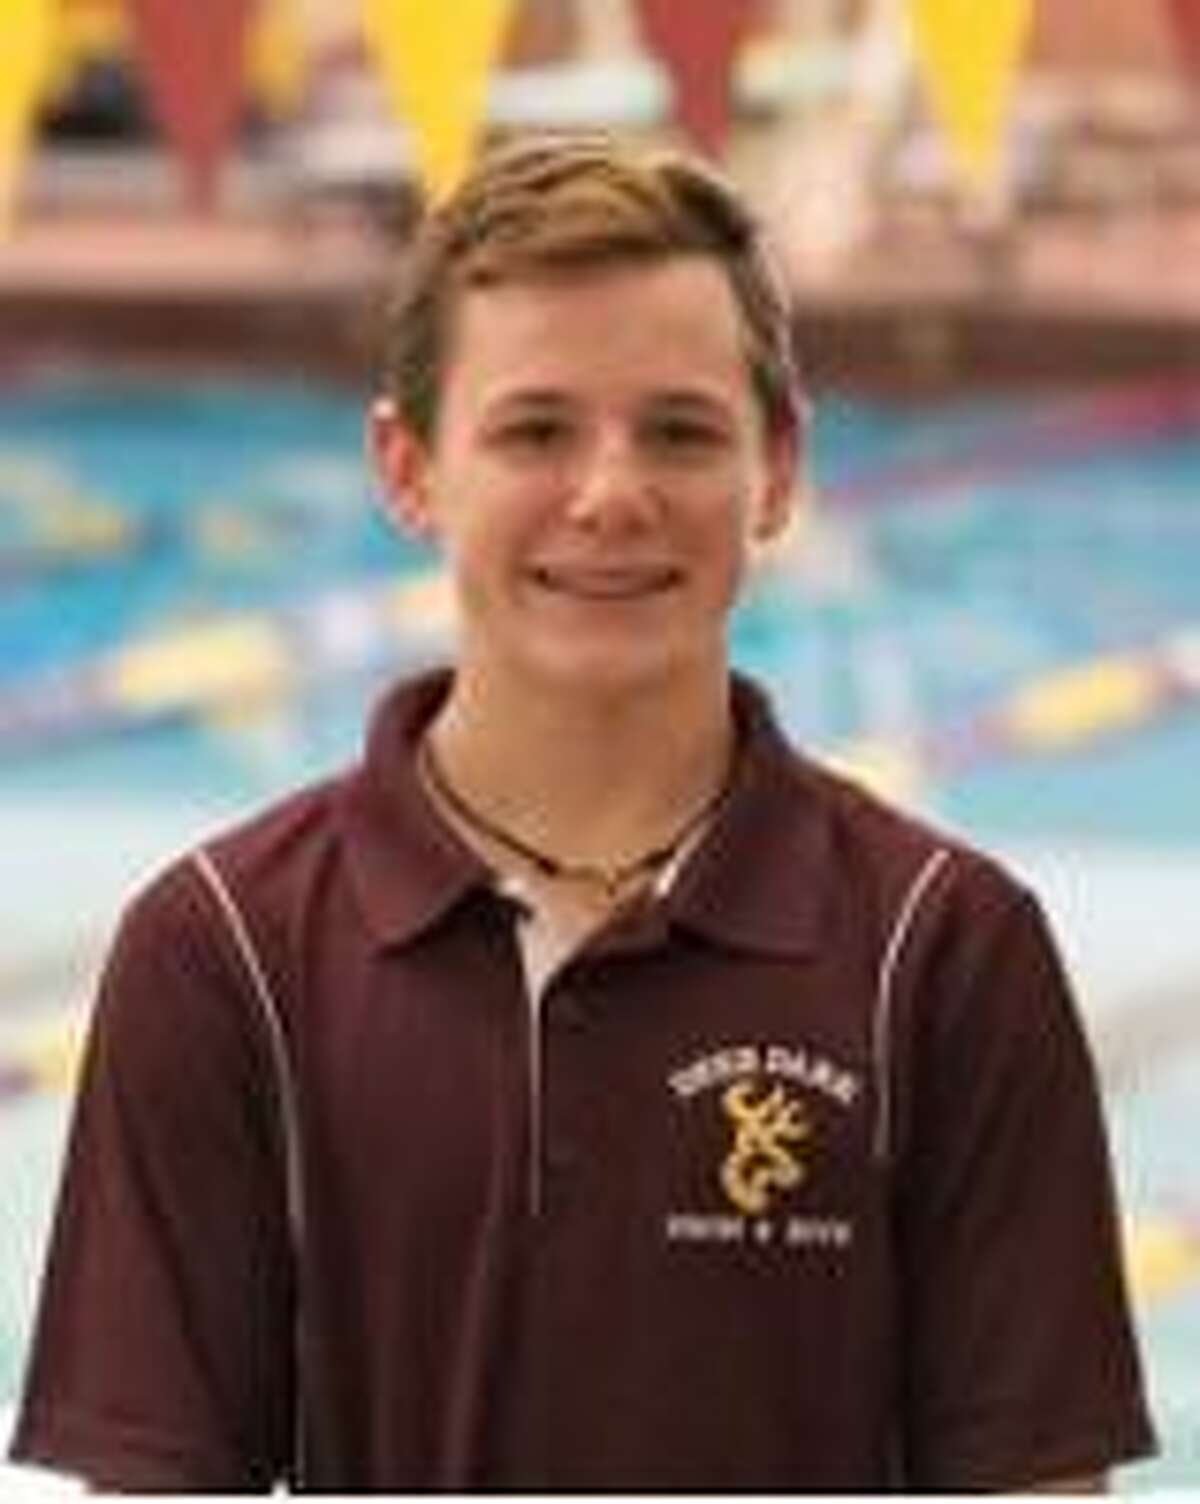 Deer Park diver Levi Ward missed the cutoff for the list of